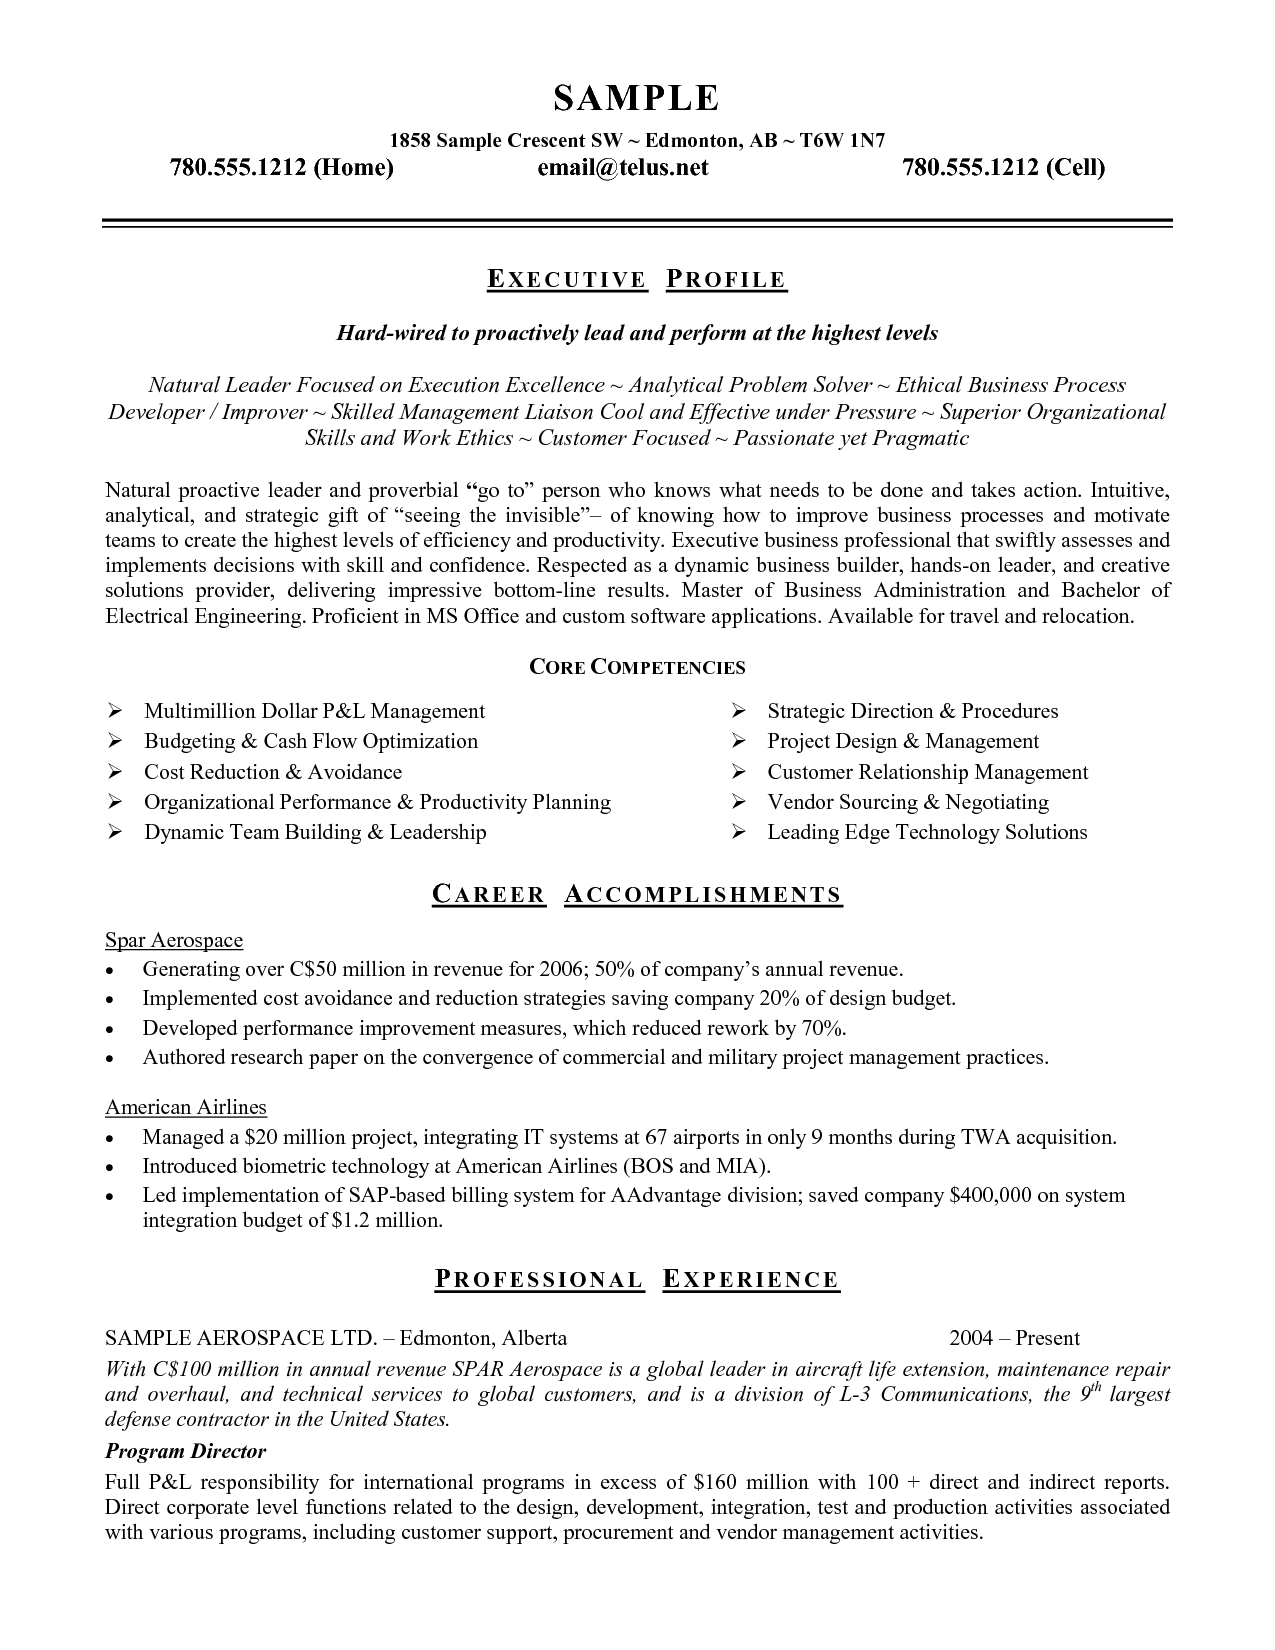 resume templates microsoft word 2010 resume templates microsoft word 2010  job resume templates